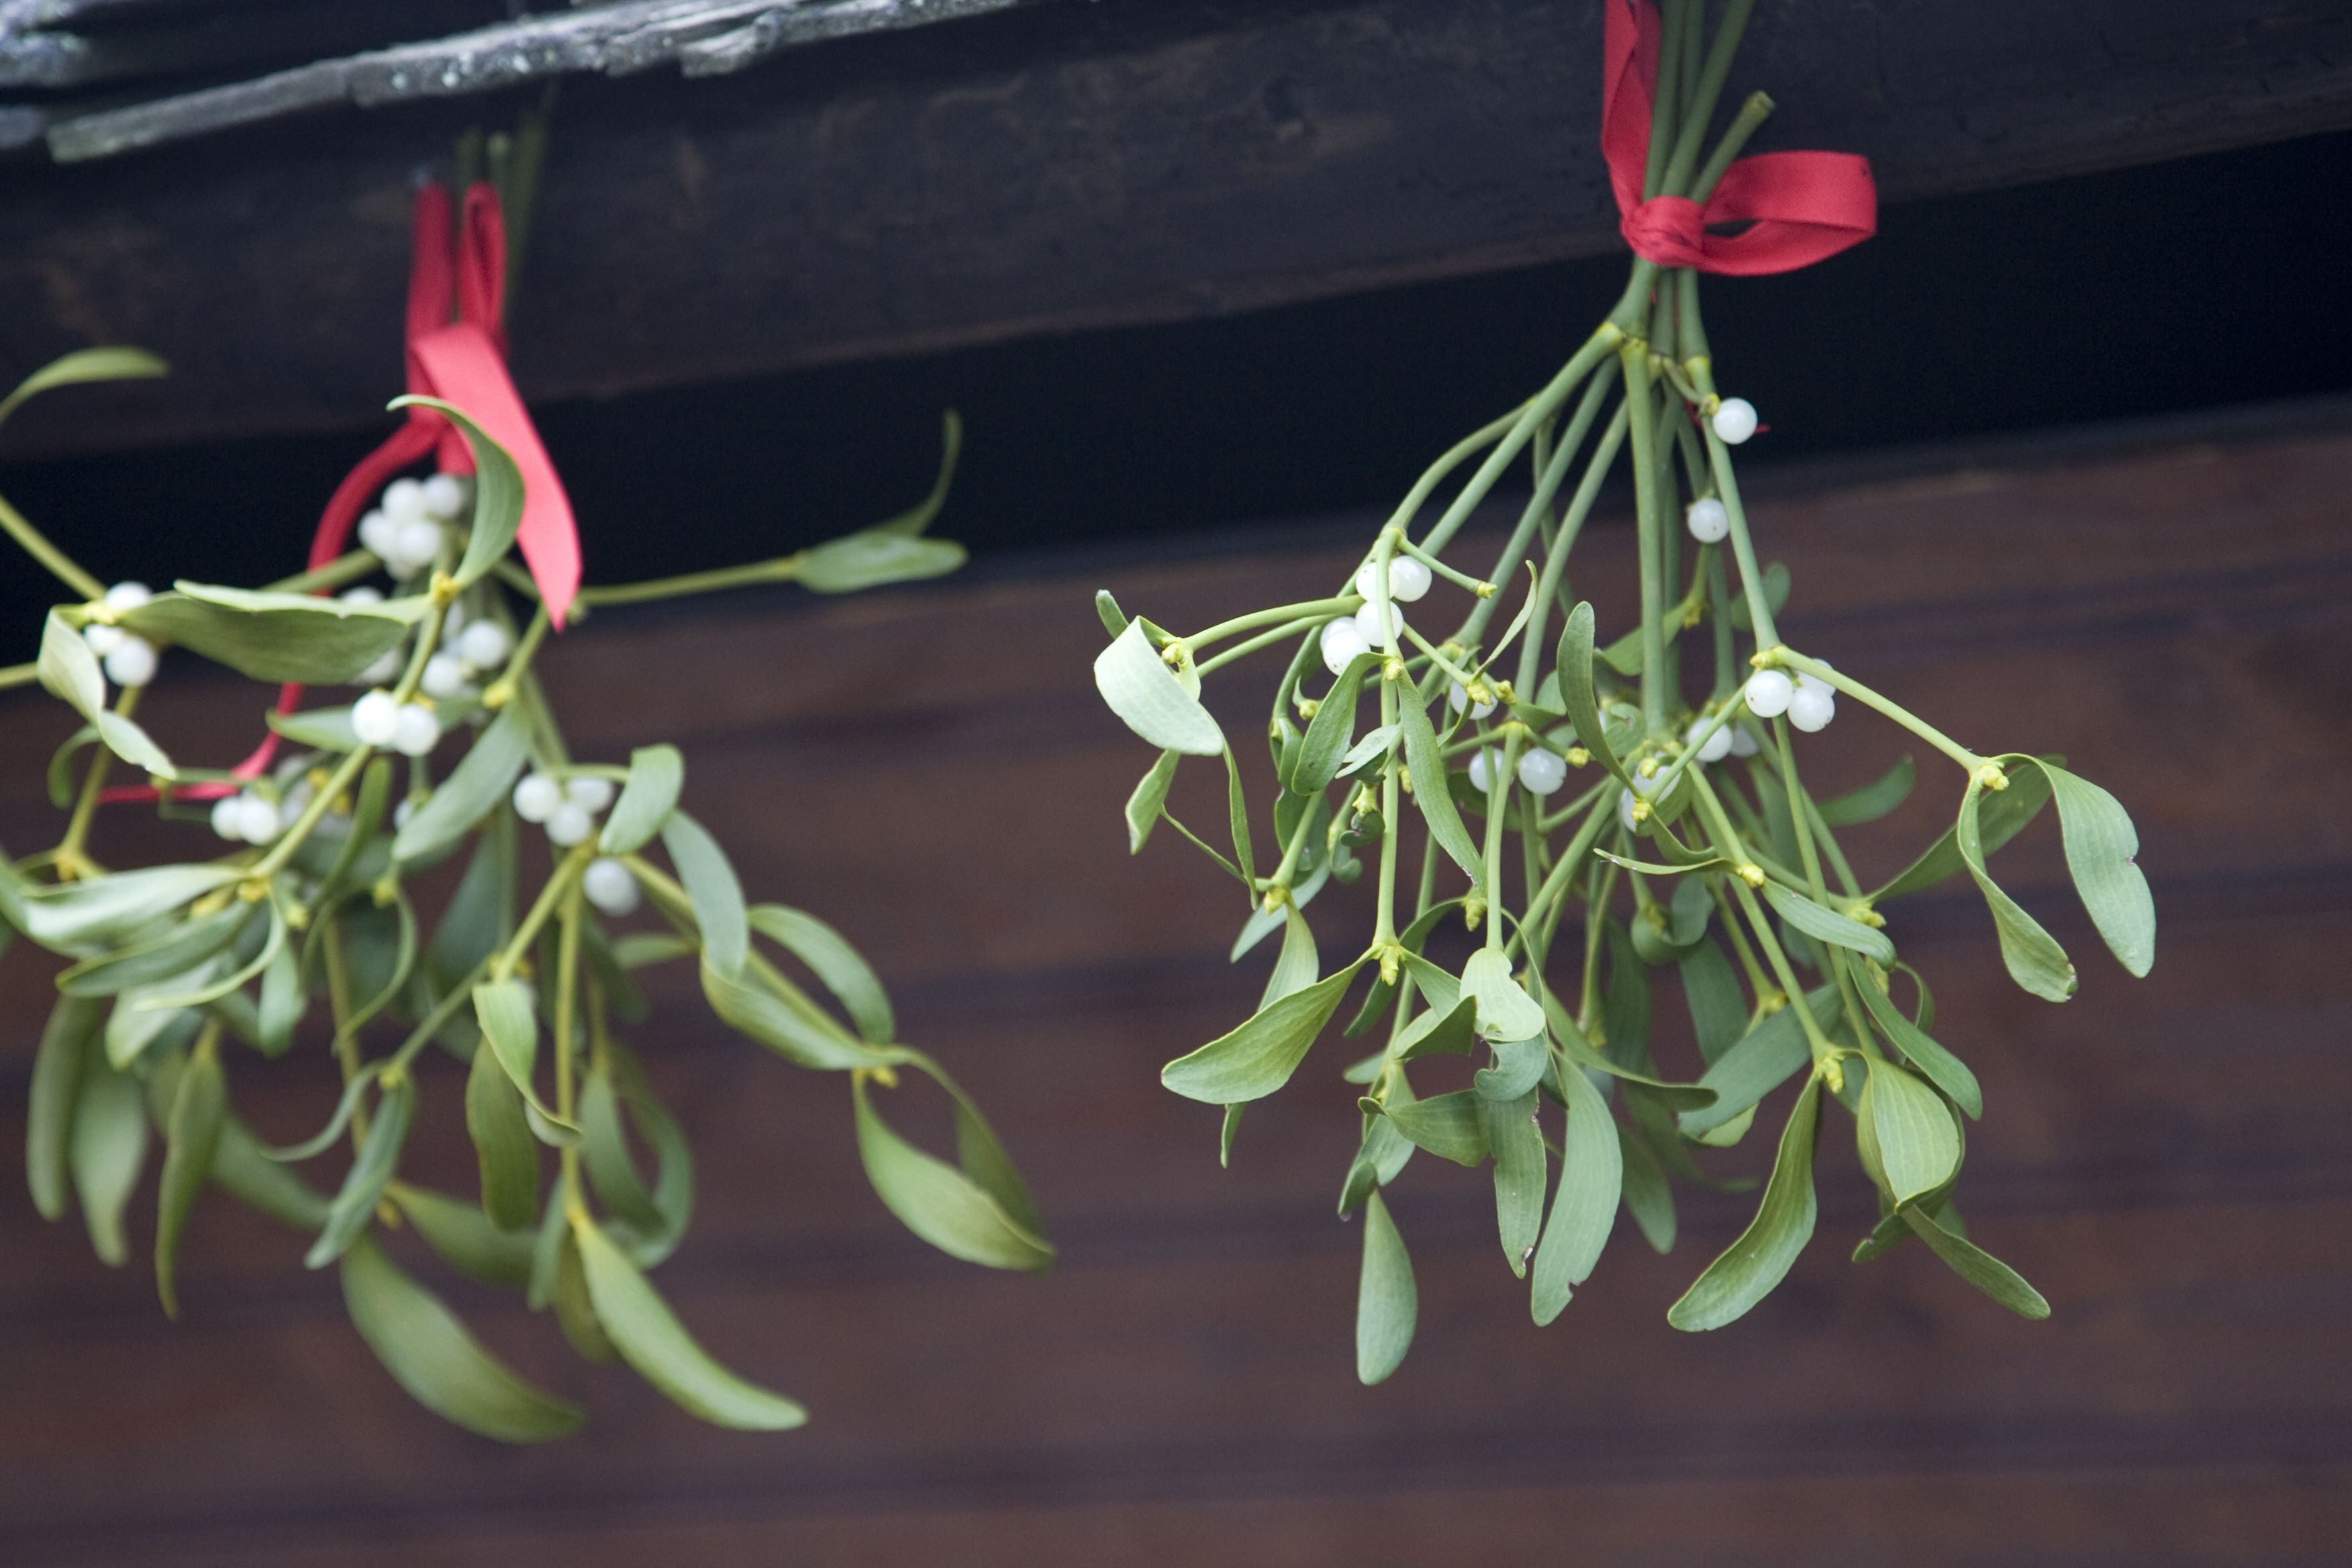 two bunches of mistletoe hanging outside